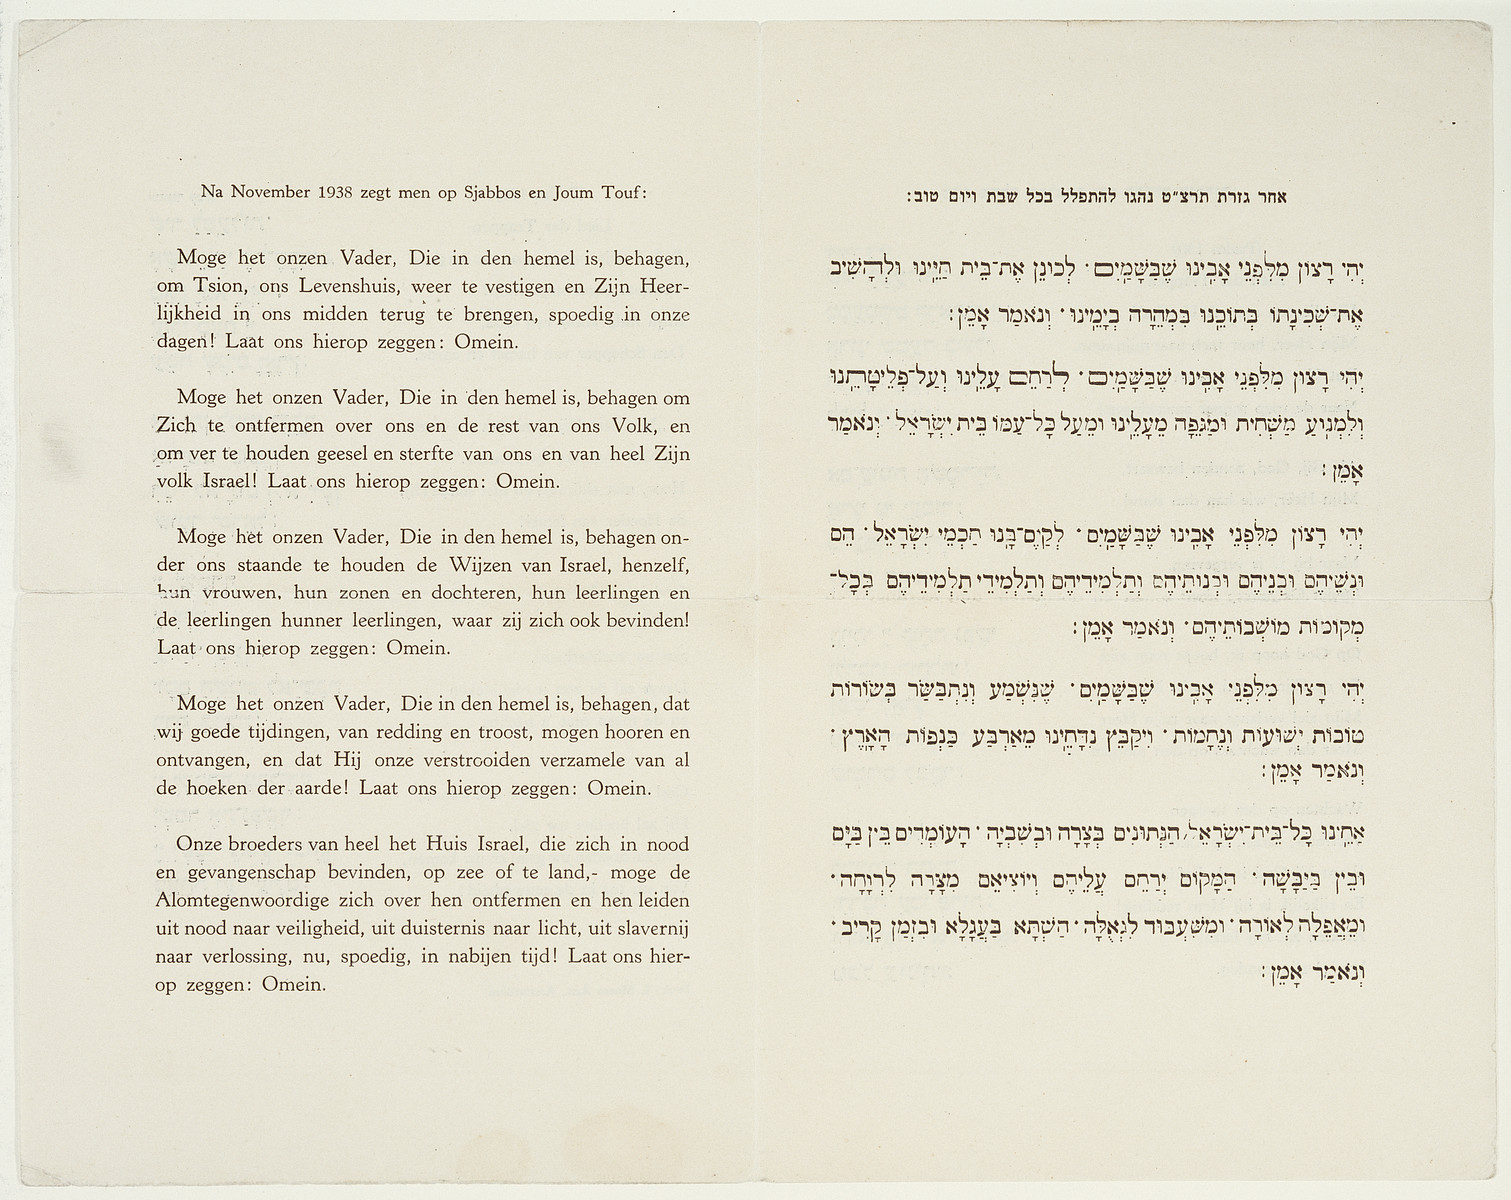 A prayer in both Hebrew and Dutch to be recited on Sabbath and holidays in memory of the victims of Kristallnacht.